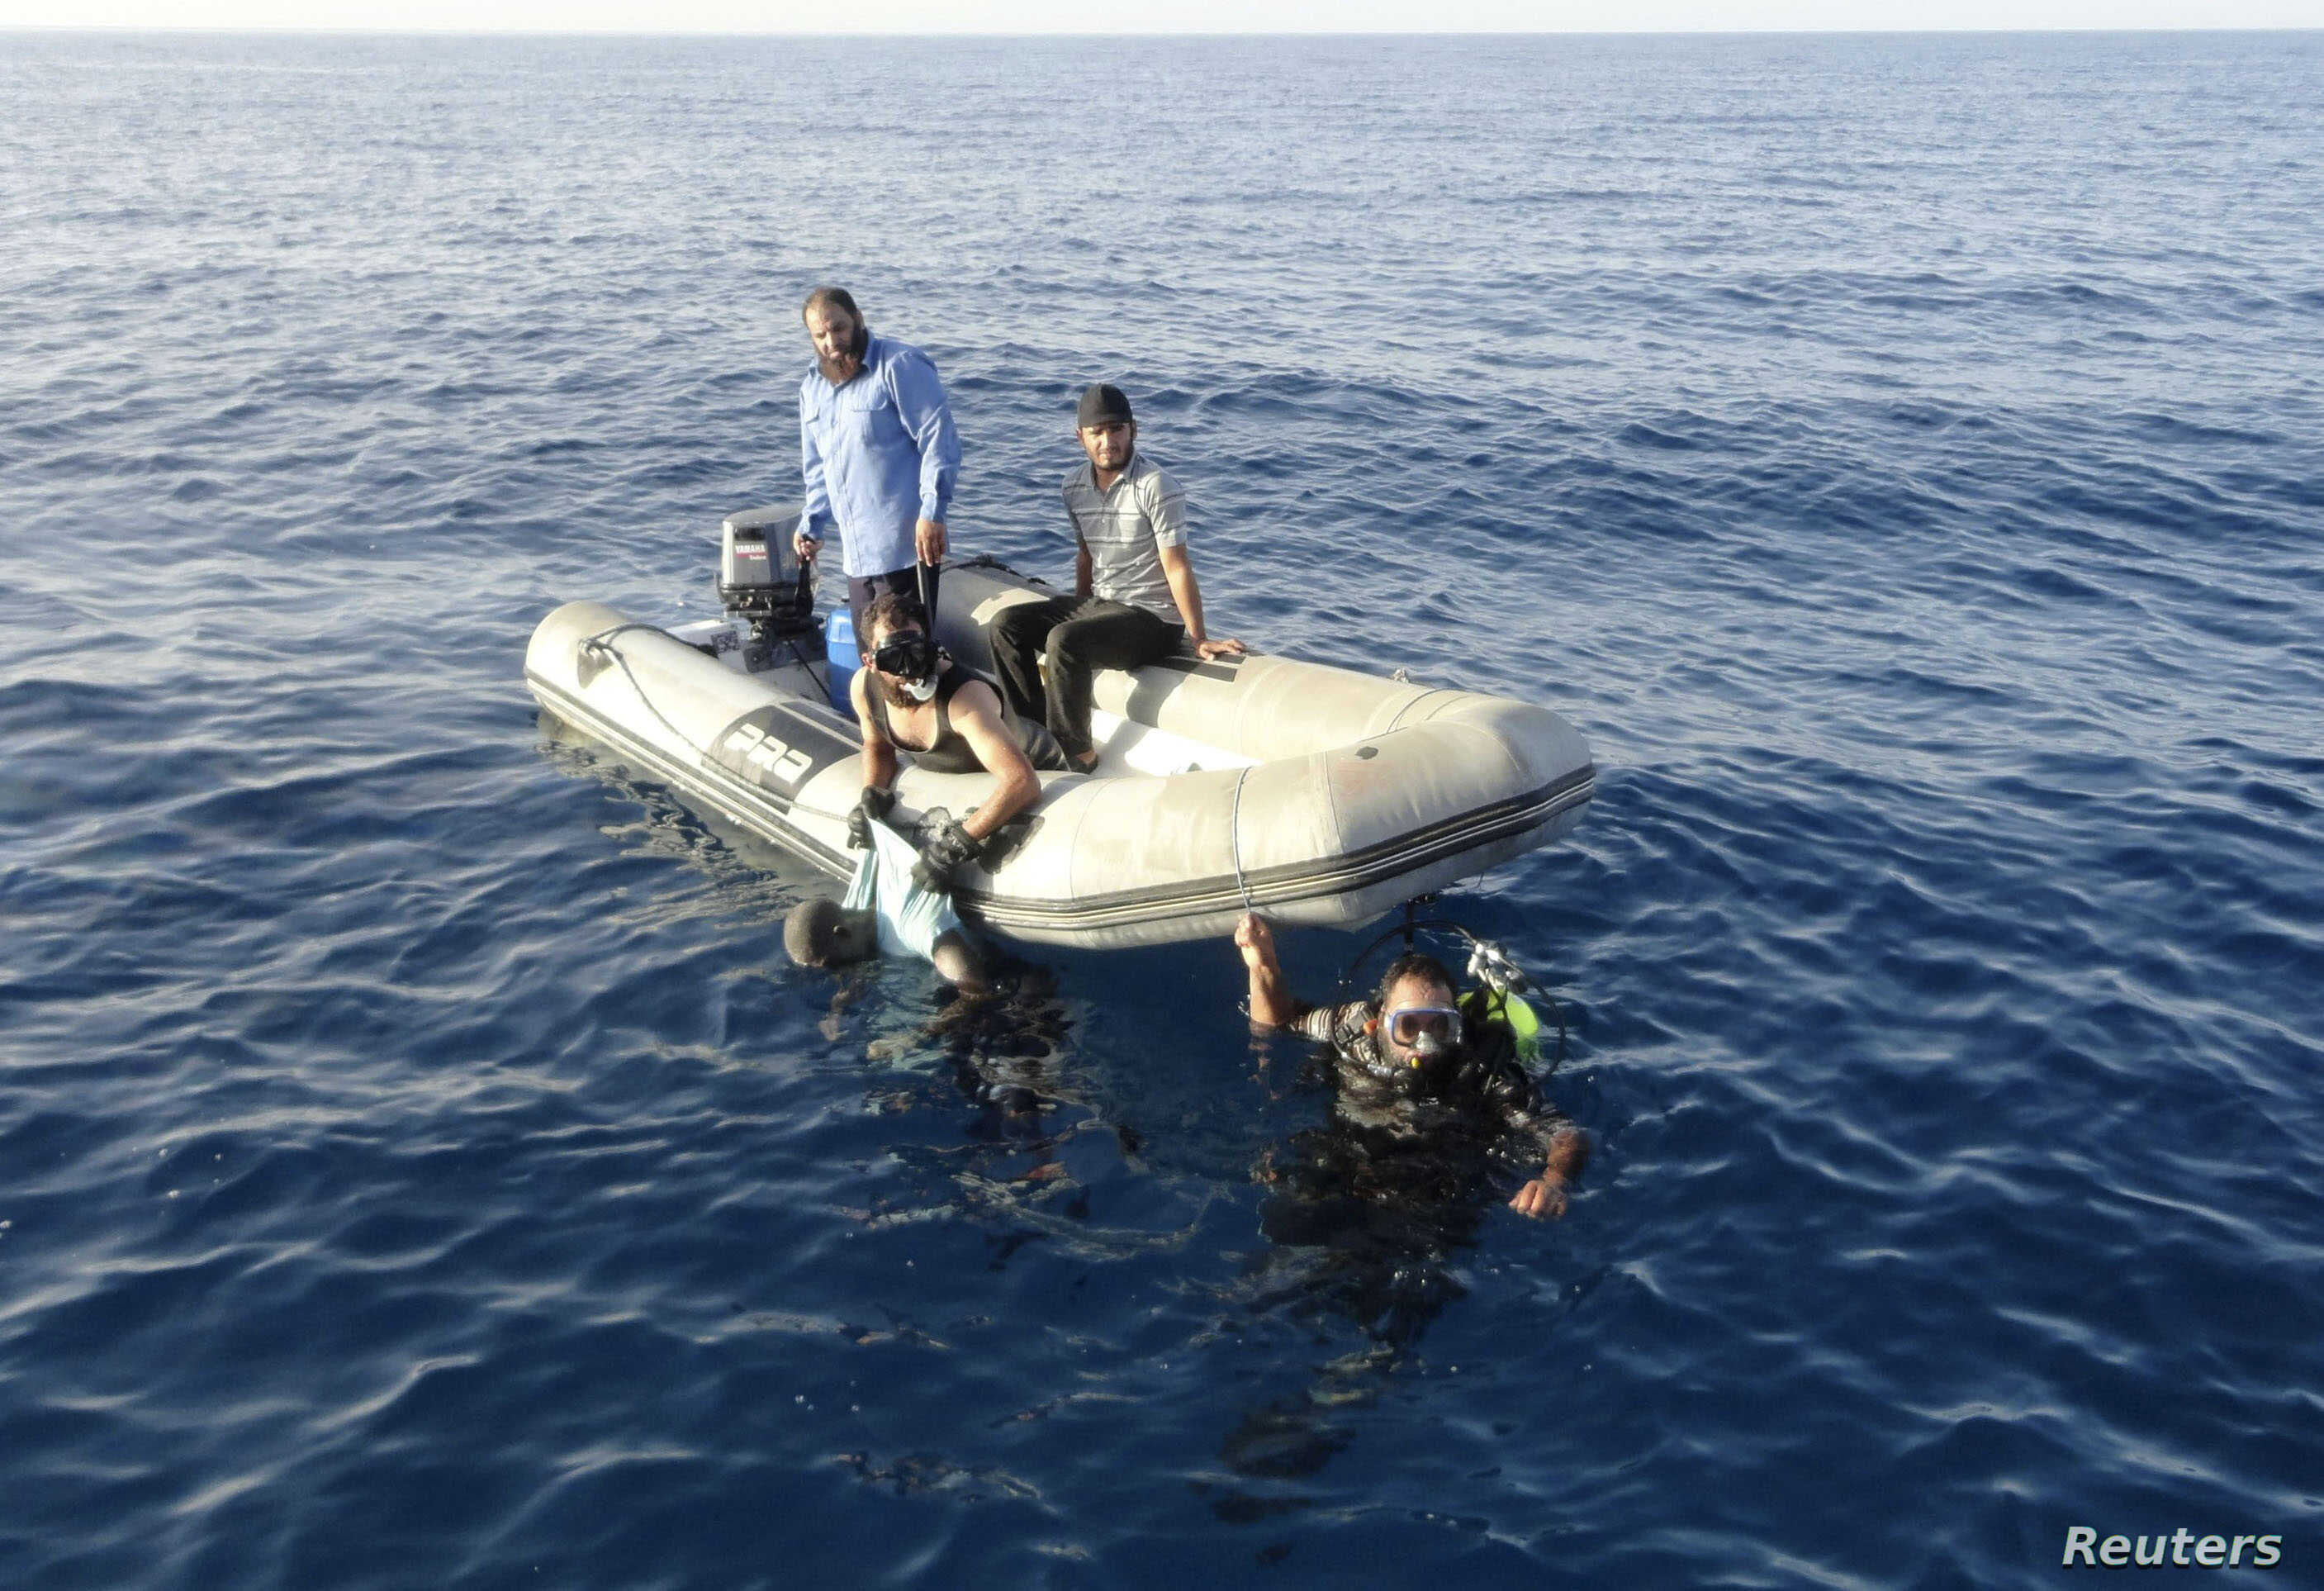 ATTENTION EDITORS - VISUAL COVERAGE OF SCENES OF INJURY OR DEATHMembers of Libya's coast guard recover the body of a migrant who drowned off Tripoli's coast, August 23, 2014. A wooden boat carrying up to 200 migrants has sunk just one kilometre (half